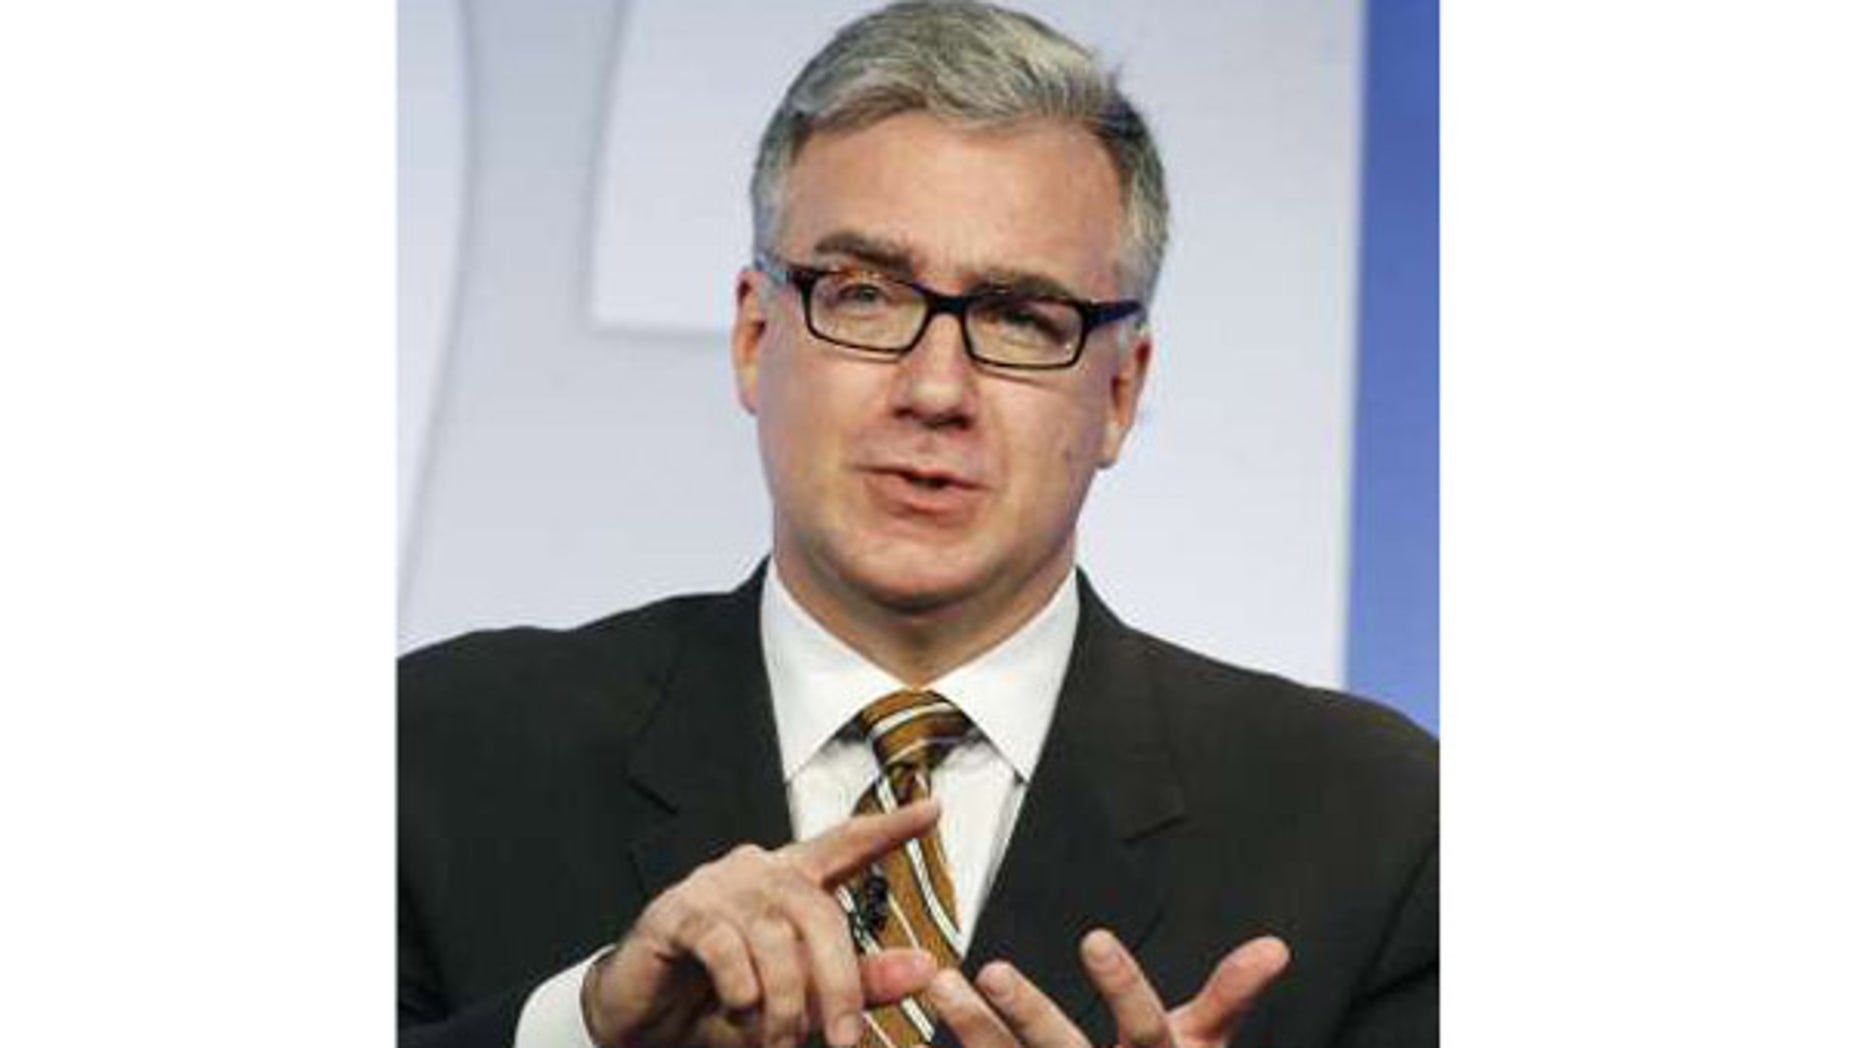 """FILE: Keith Olbermann, who was suspended Friday from his MSNBC show """"Countdown With Keith Olbermann"""" speaks at an NBC Universal summer press tour in Beverly Hills on July 21, 2008."""